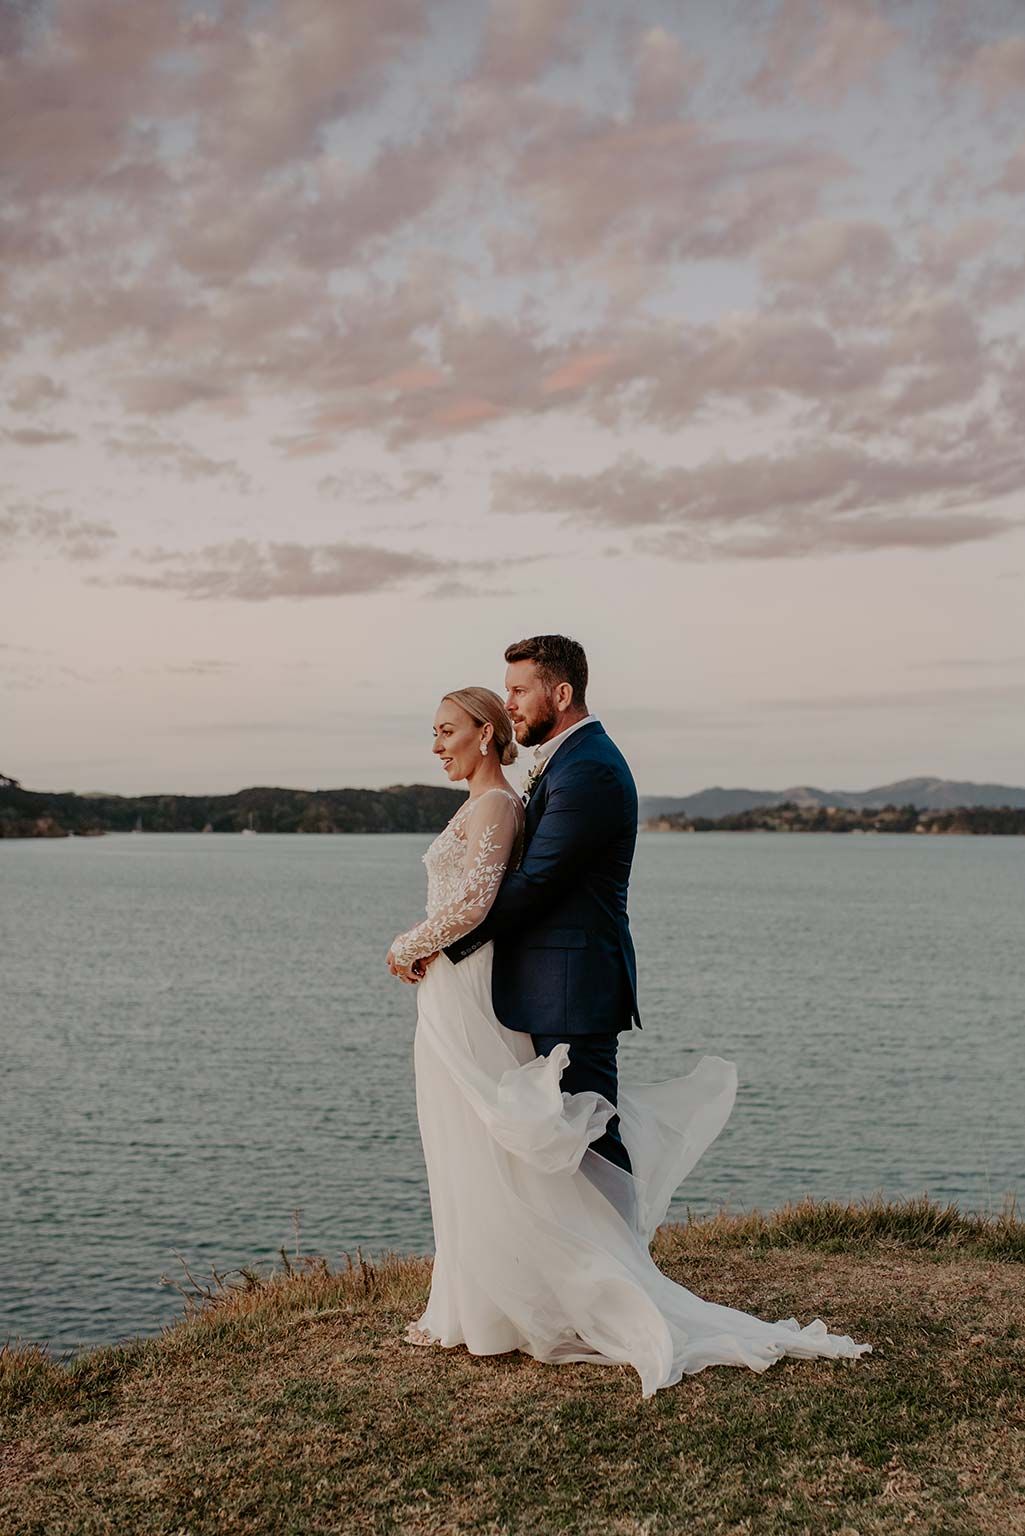 Vinka Design Features Real Weddings - bride and groom embrace next to the ocean - bride wearing a bespoke Makaira gown with silk-chiffon and tulle overskirt giving her a beautiful train which could be removed later on to reveal a floor length party dress